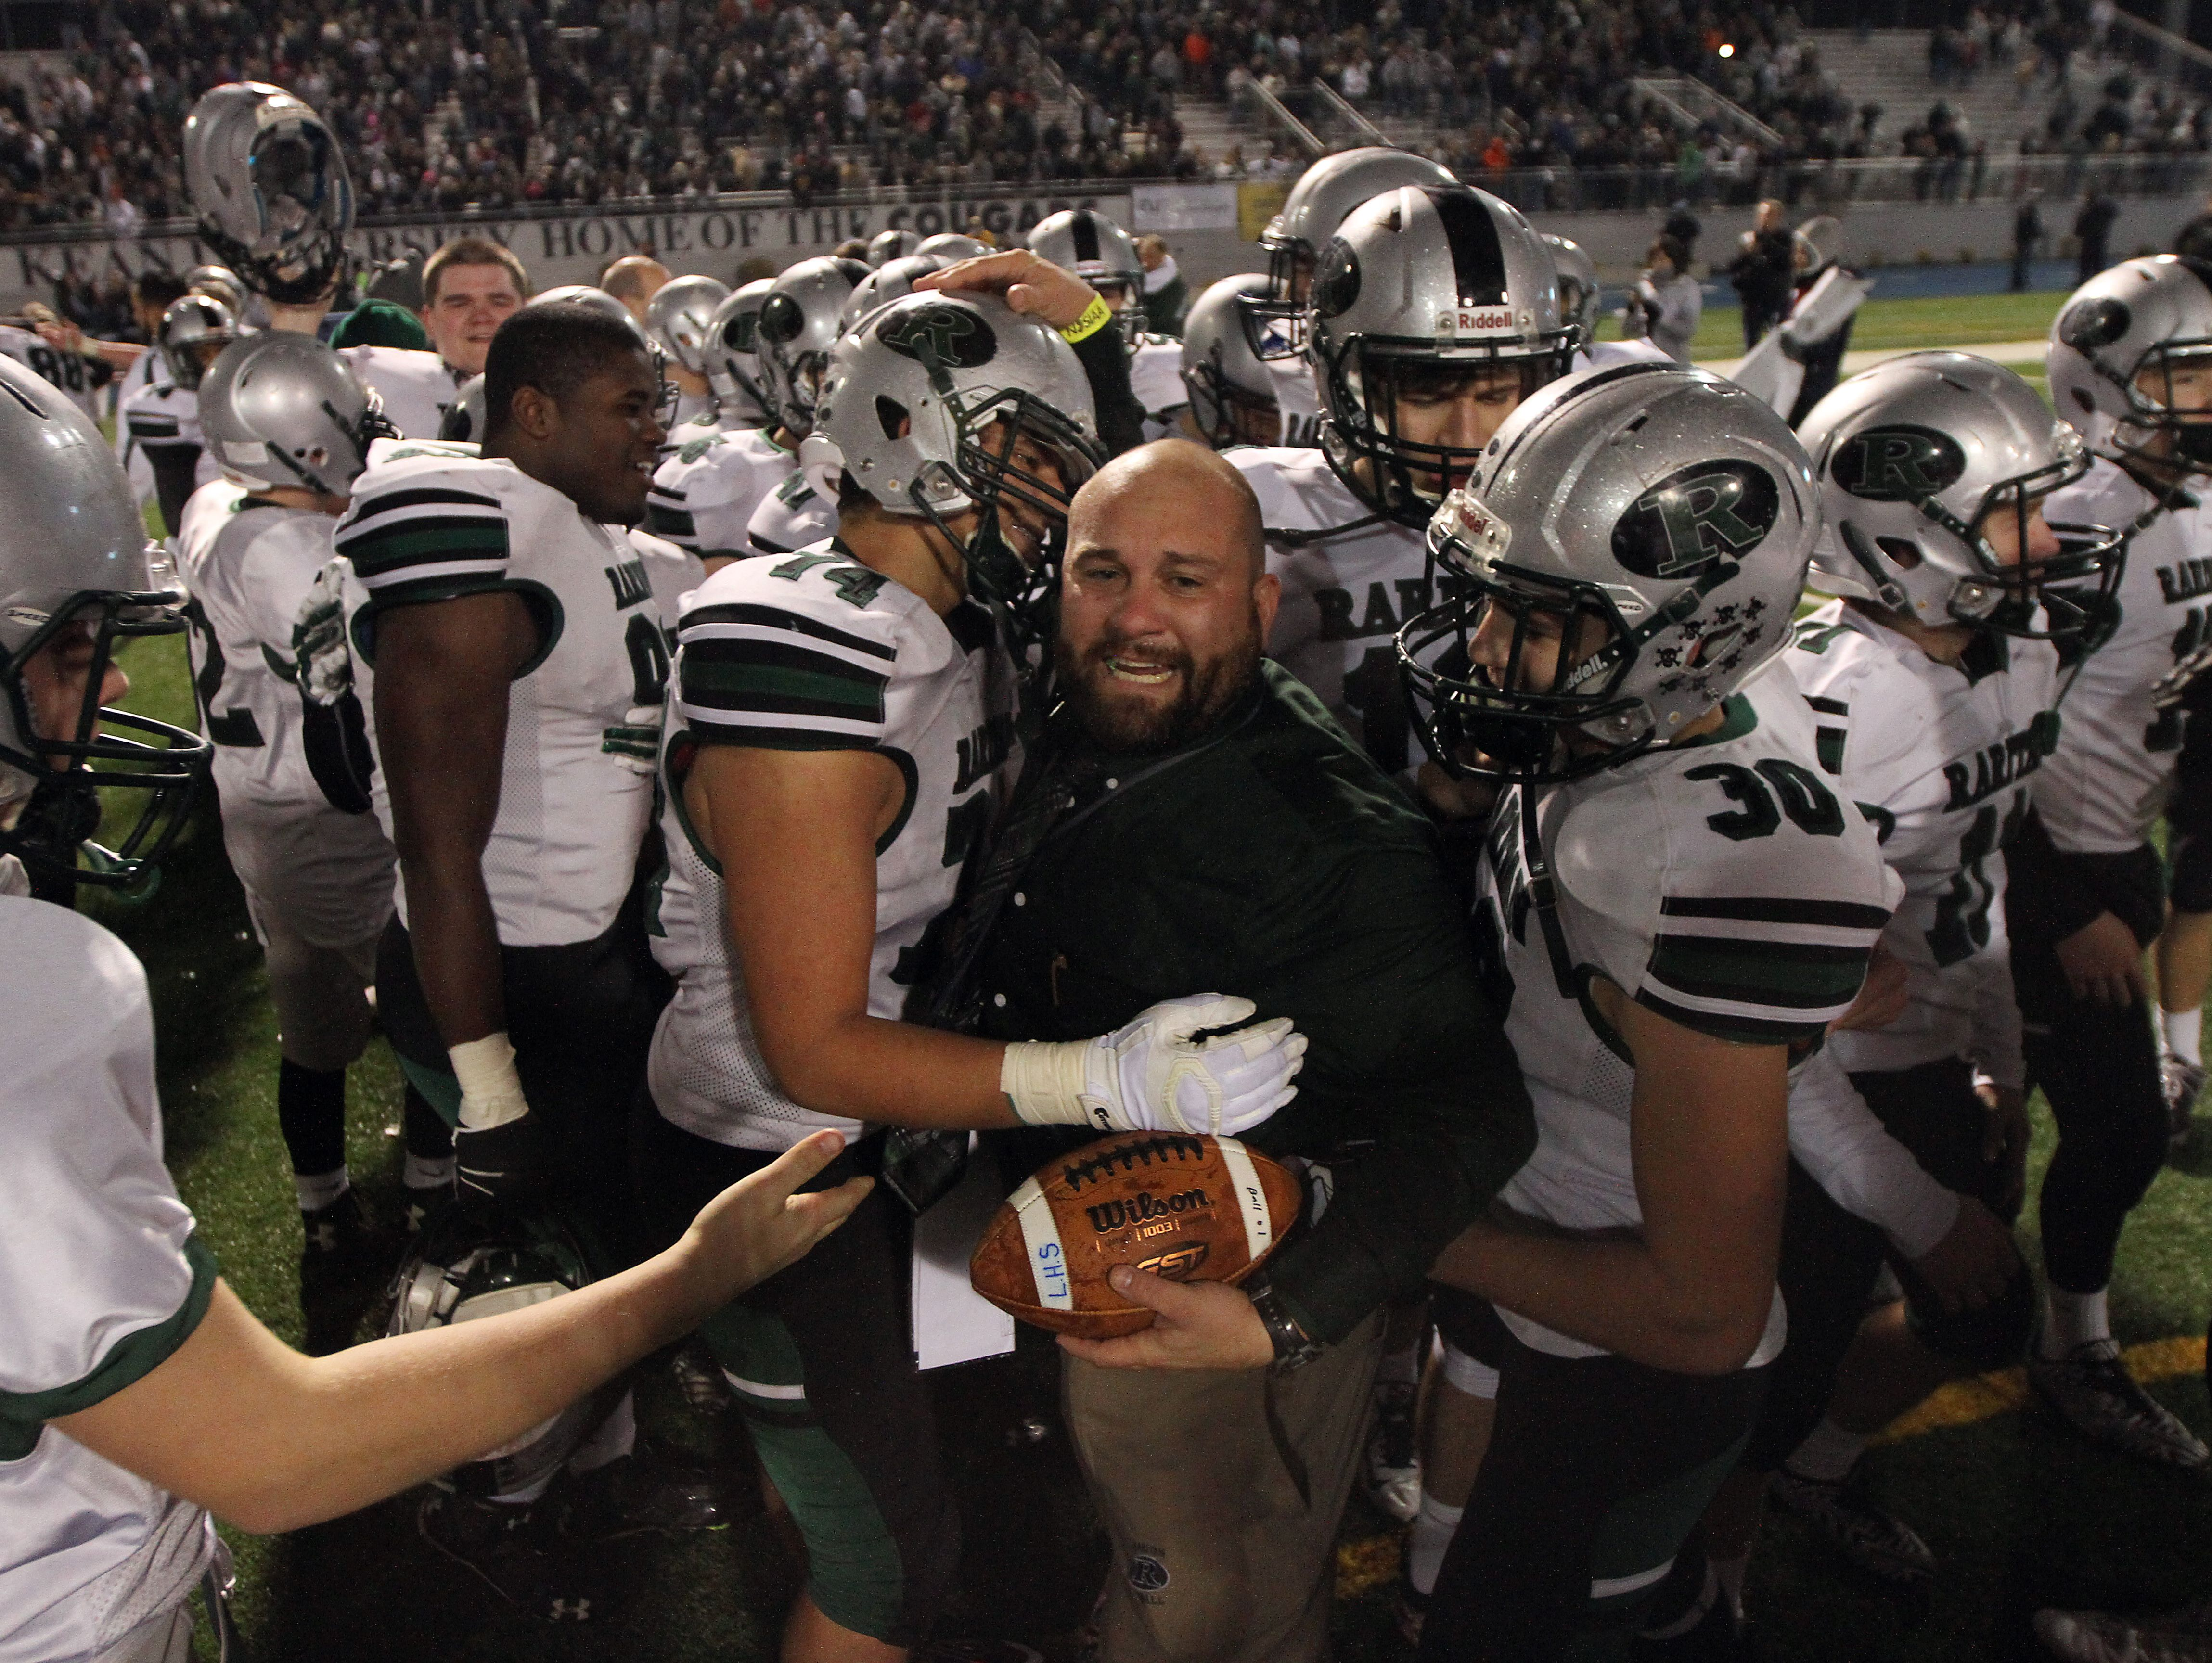 The run by the Raritan players, shown with head coach Anthony Petruzzi (center) celebrating the NJSIAA Central Group II championship, was one of the many highlights of the 2015 Shore Conference scholastic football season.